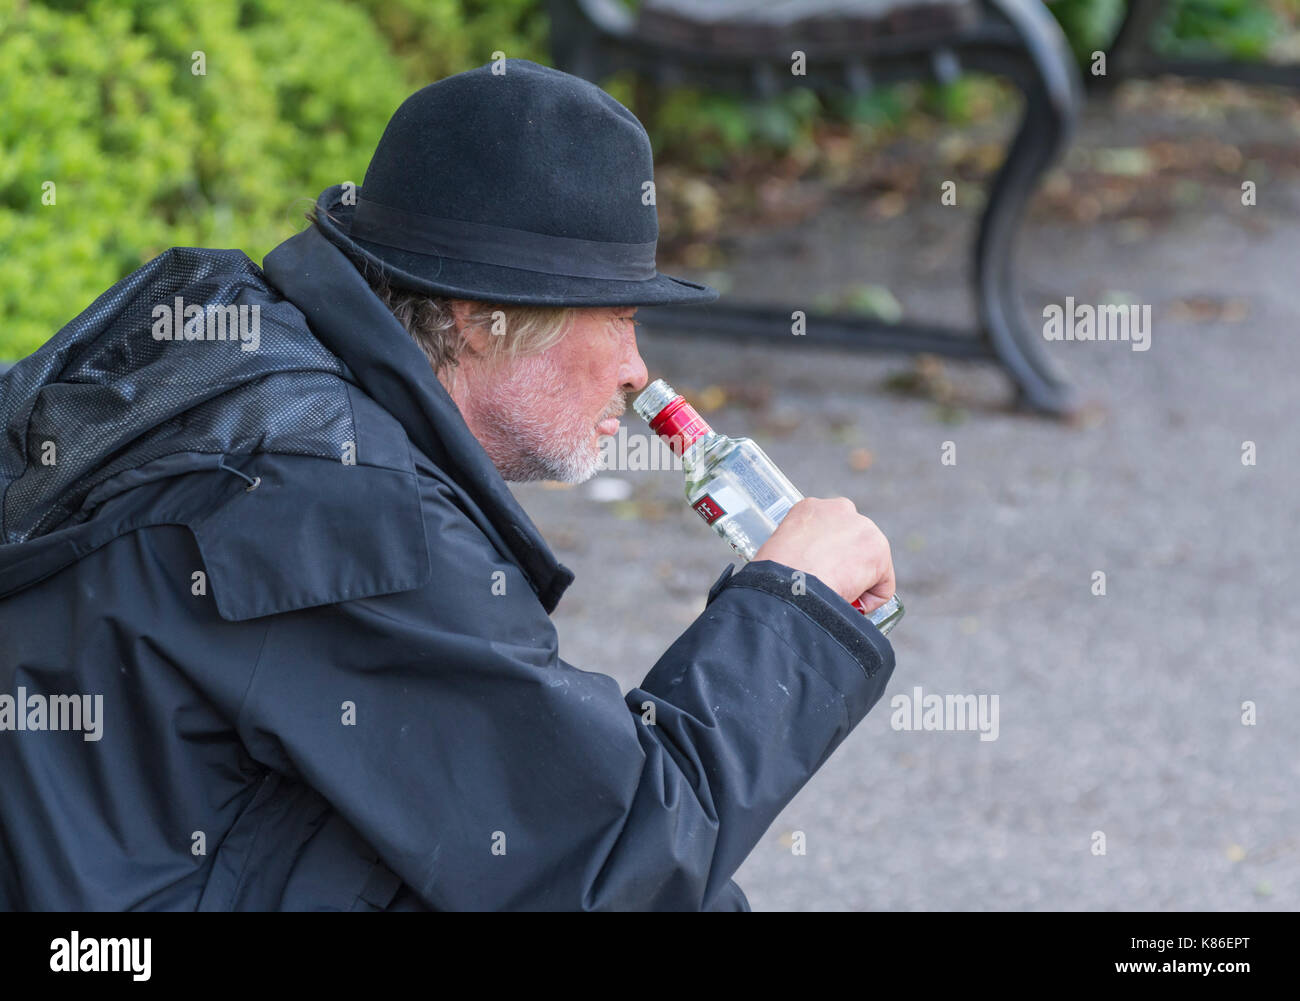 Man outside drinking in the daytime, appearing to be homeless, in the South of England, UK. Man drowning his sorrows. - Stock Image